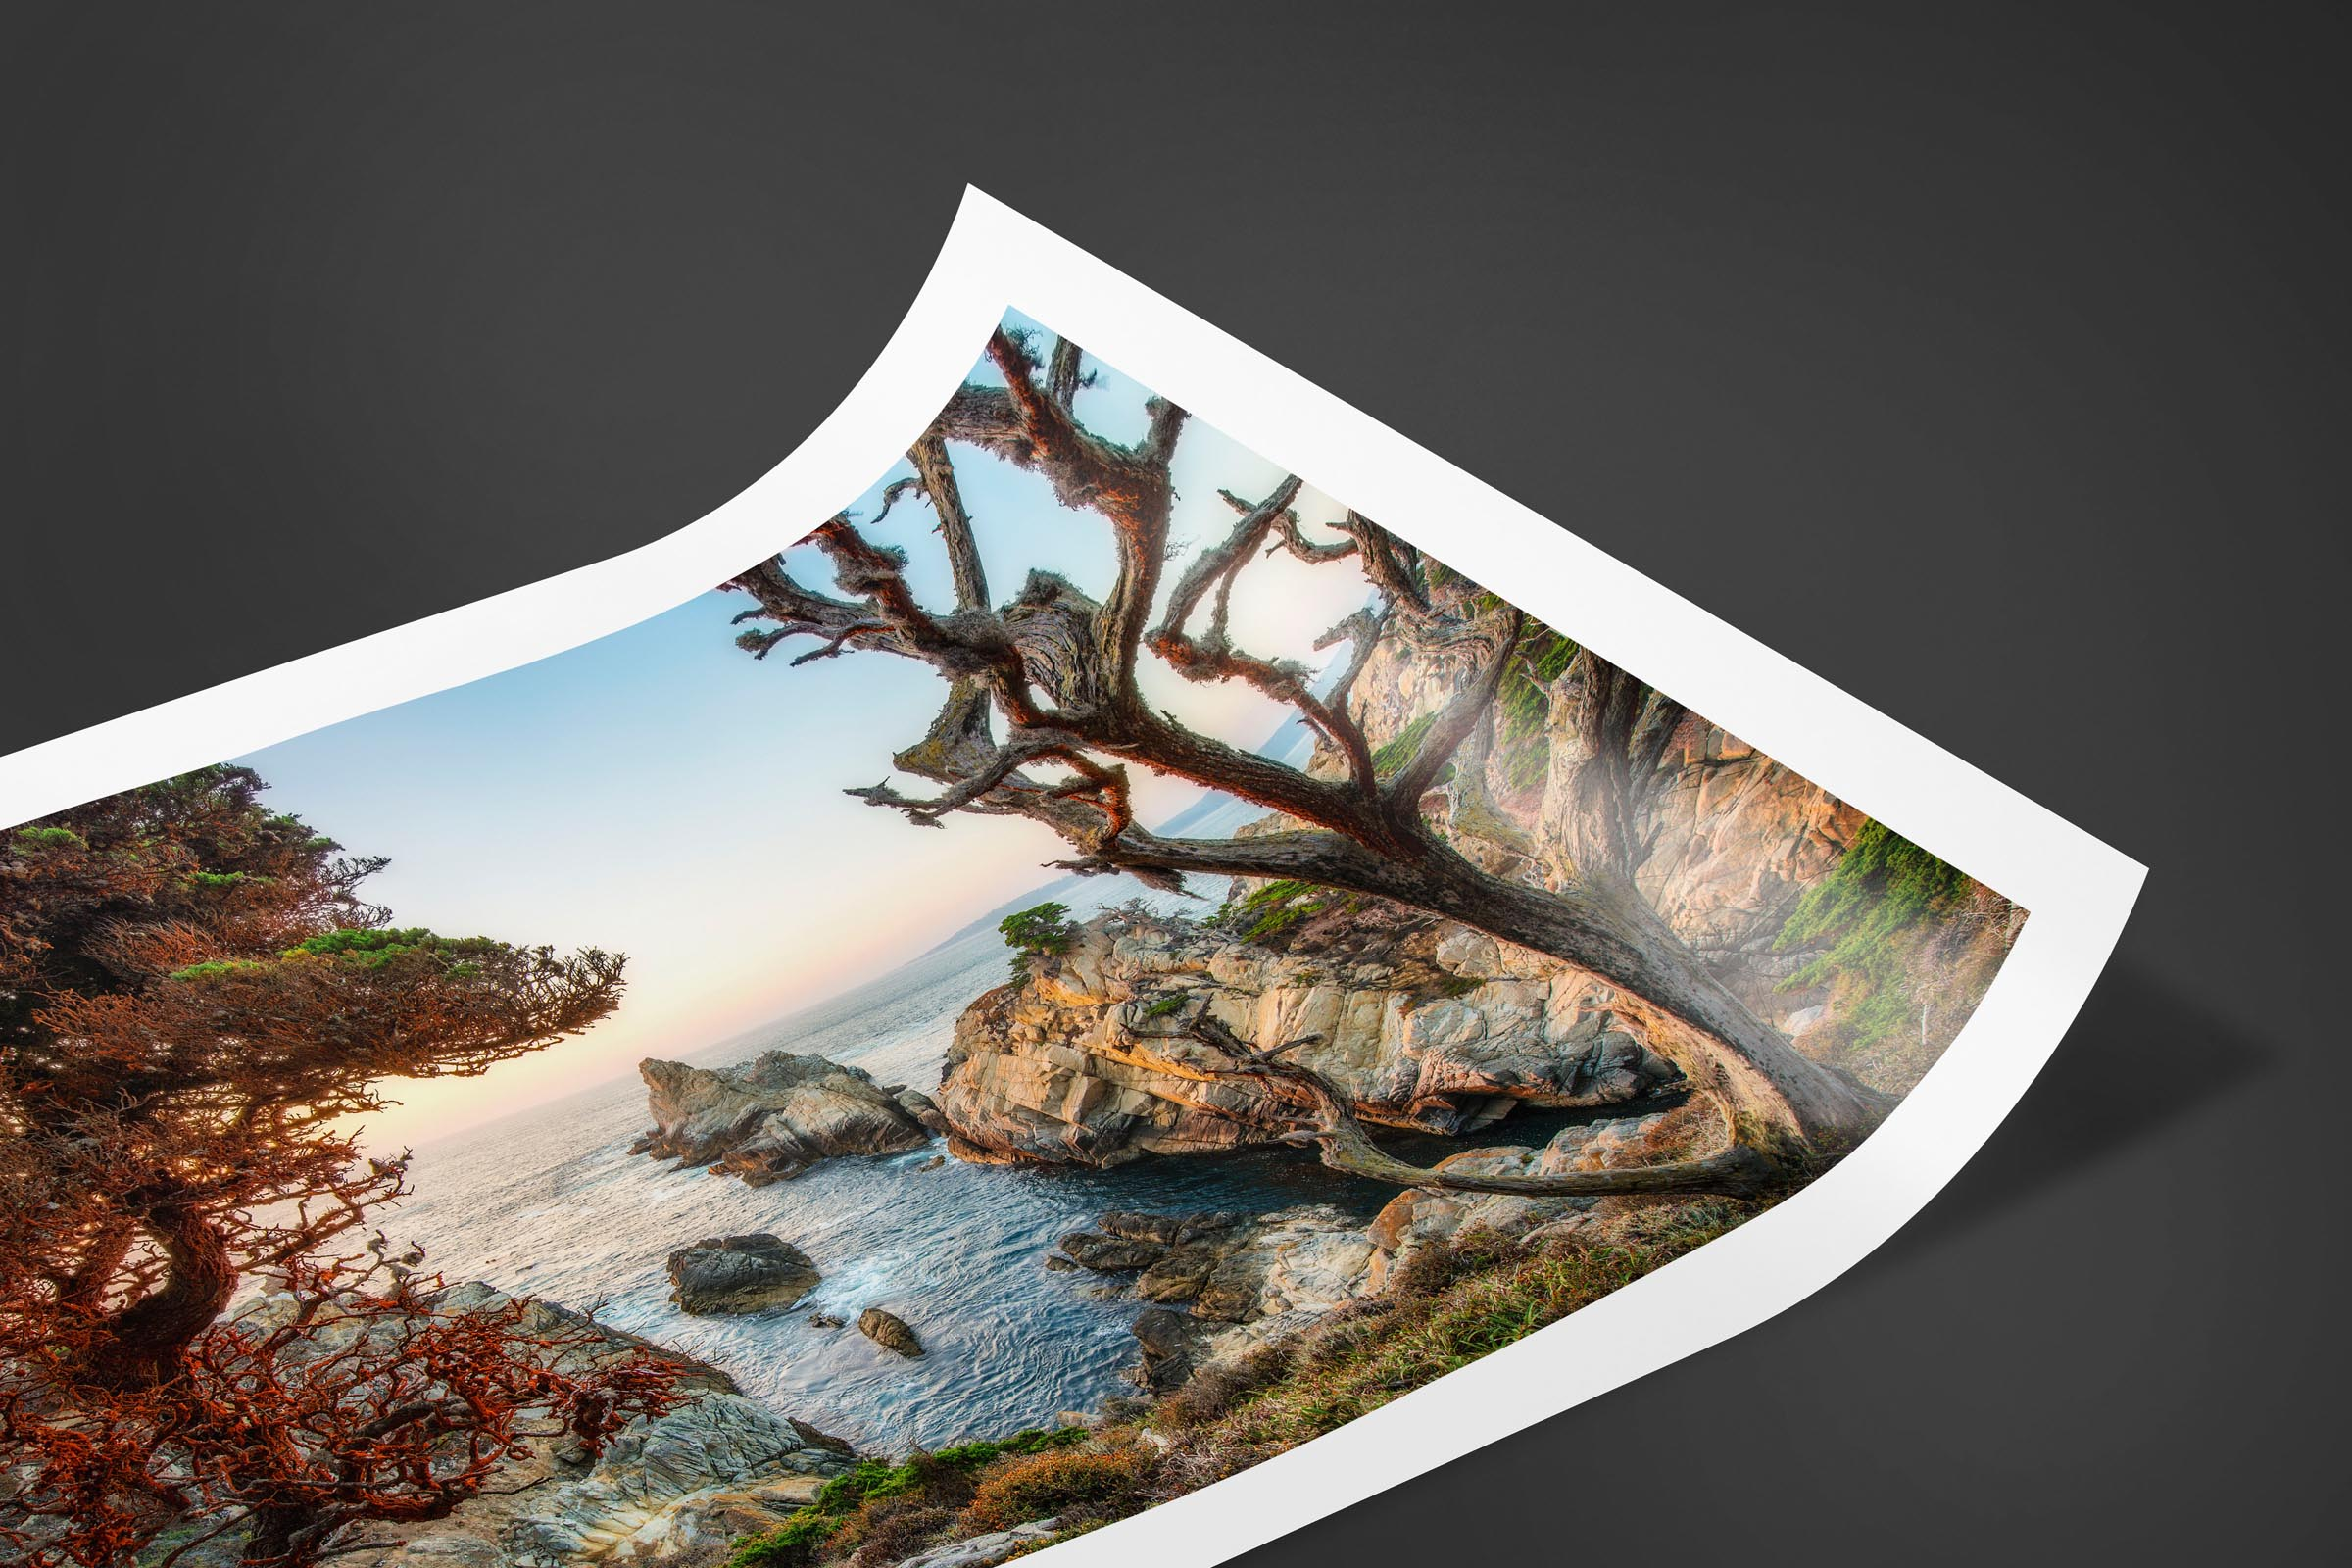 Fine art limited edition print of Point Lobos in Carmel, California by Brent Goldman Photography